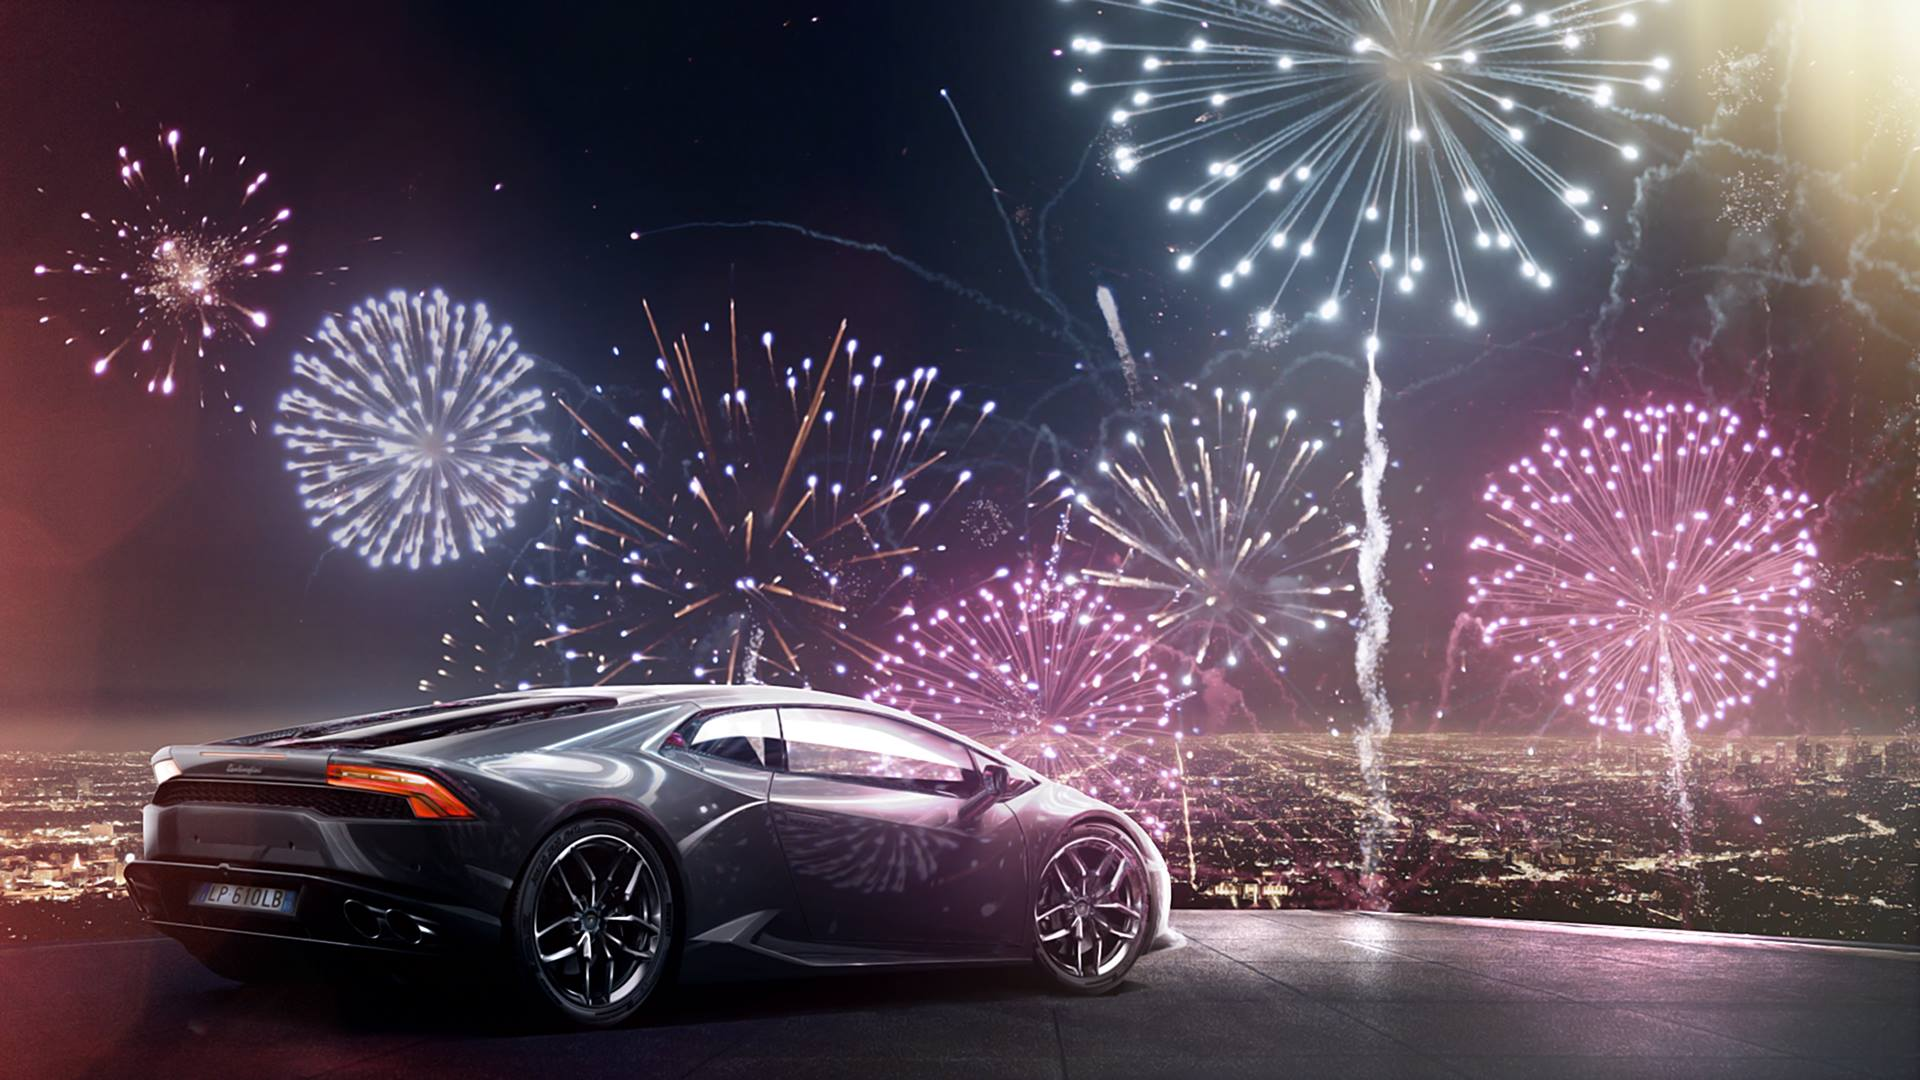 Happy New Year Car Wallpaper